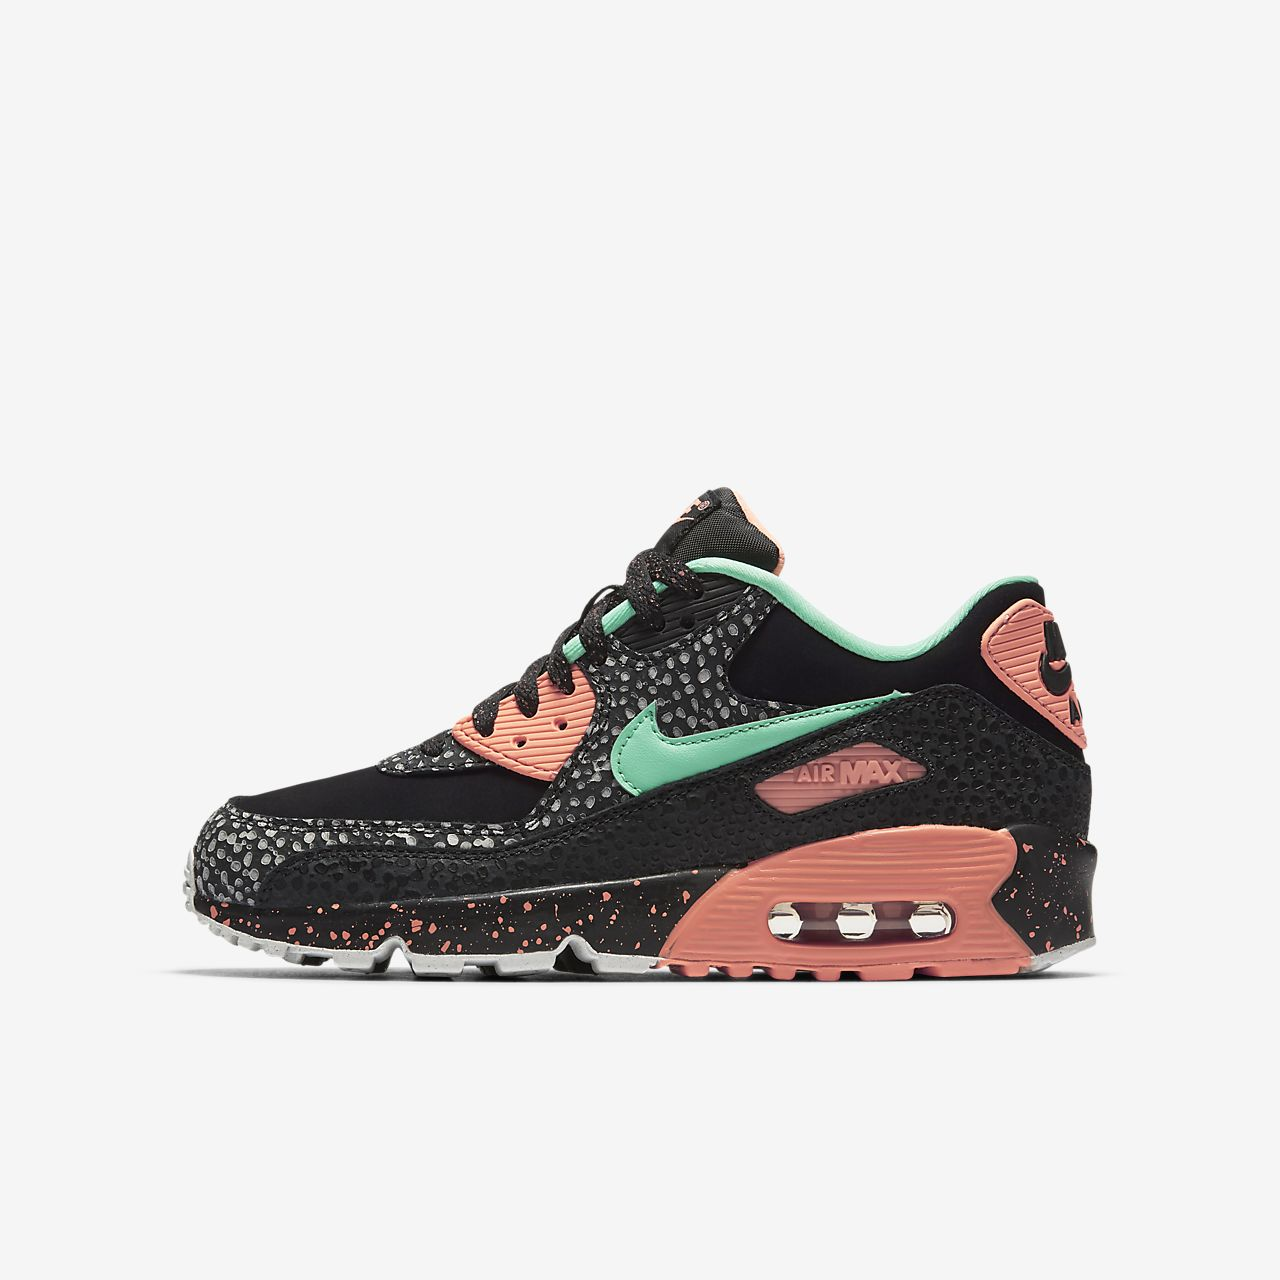 new product 37eb2 e2689 Acquista nike air max qs - OFF42% sconti